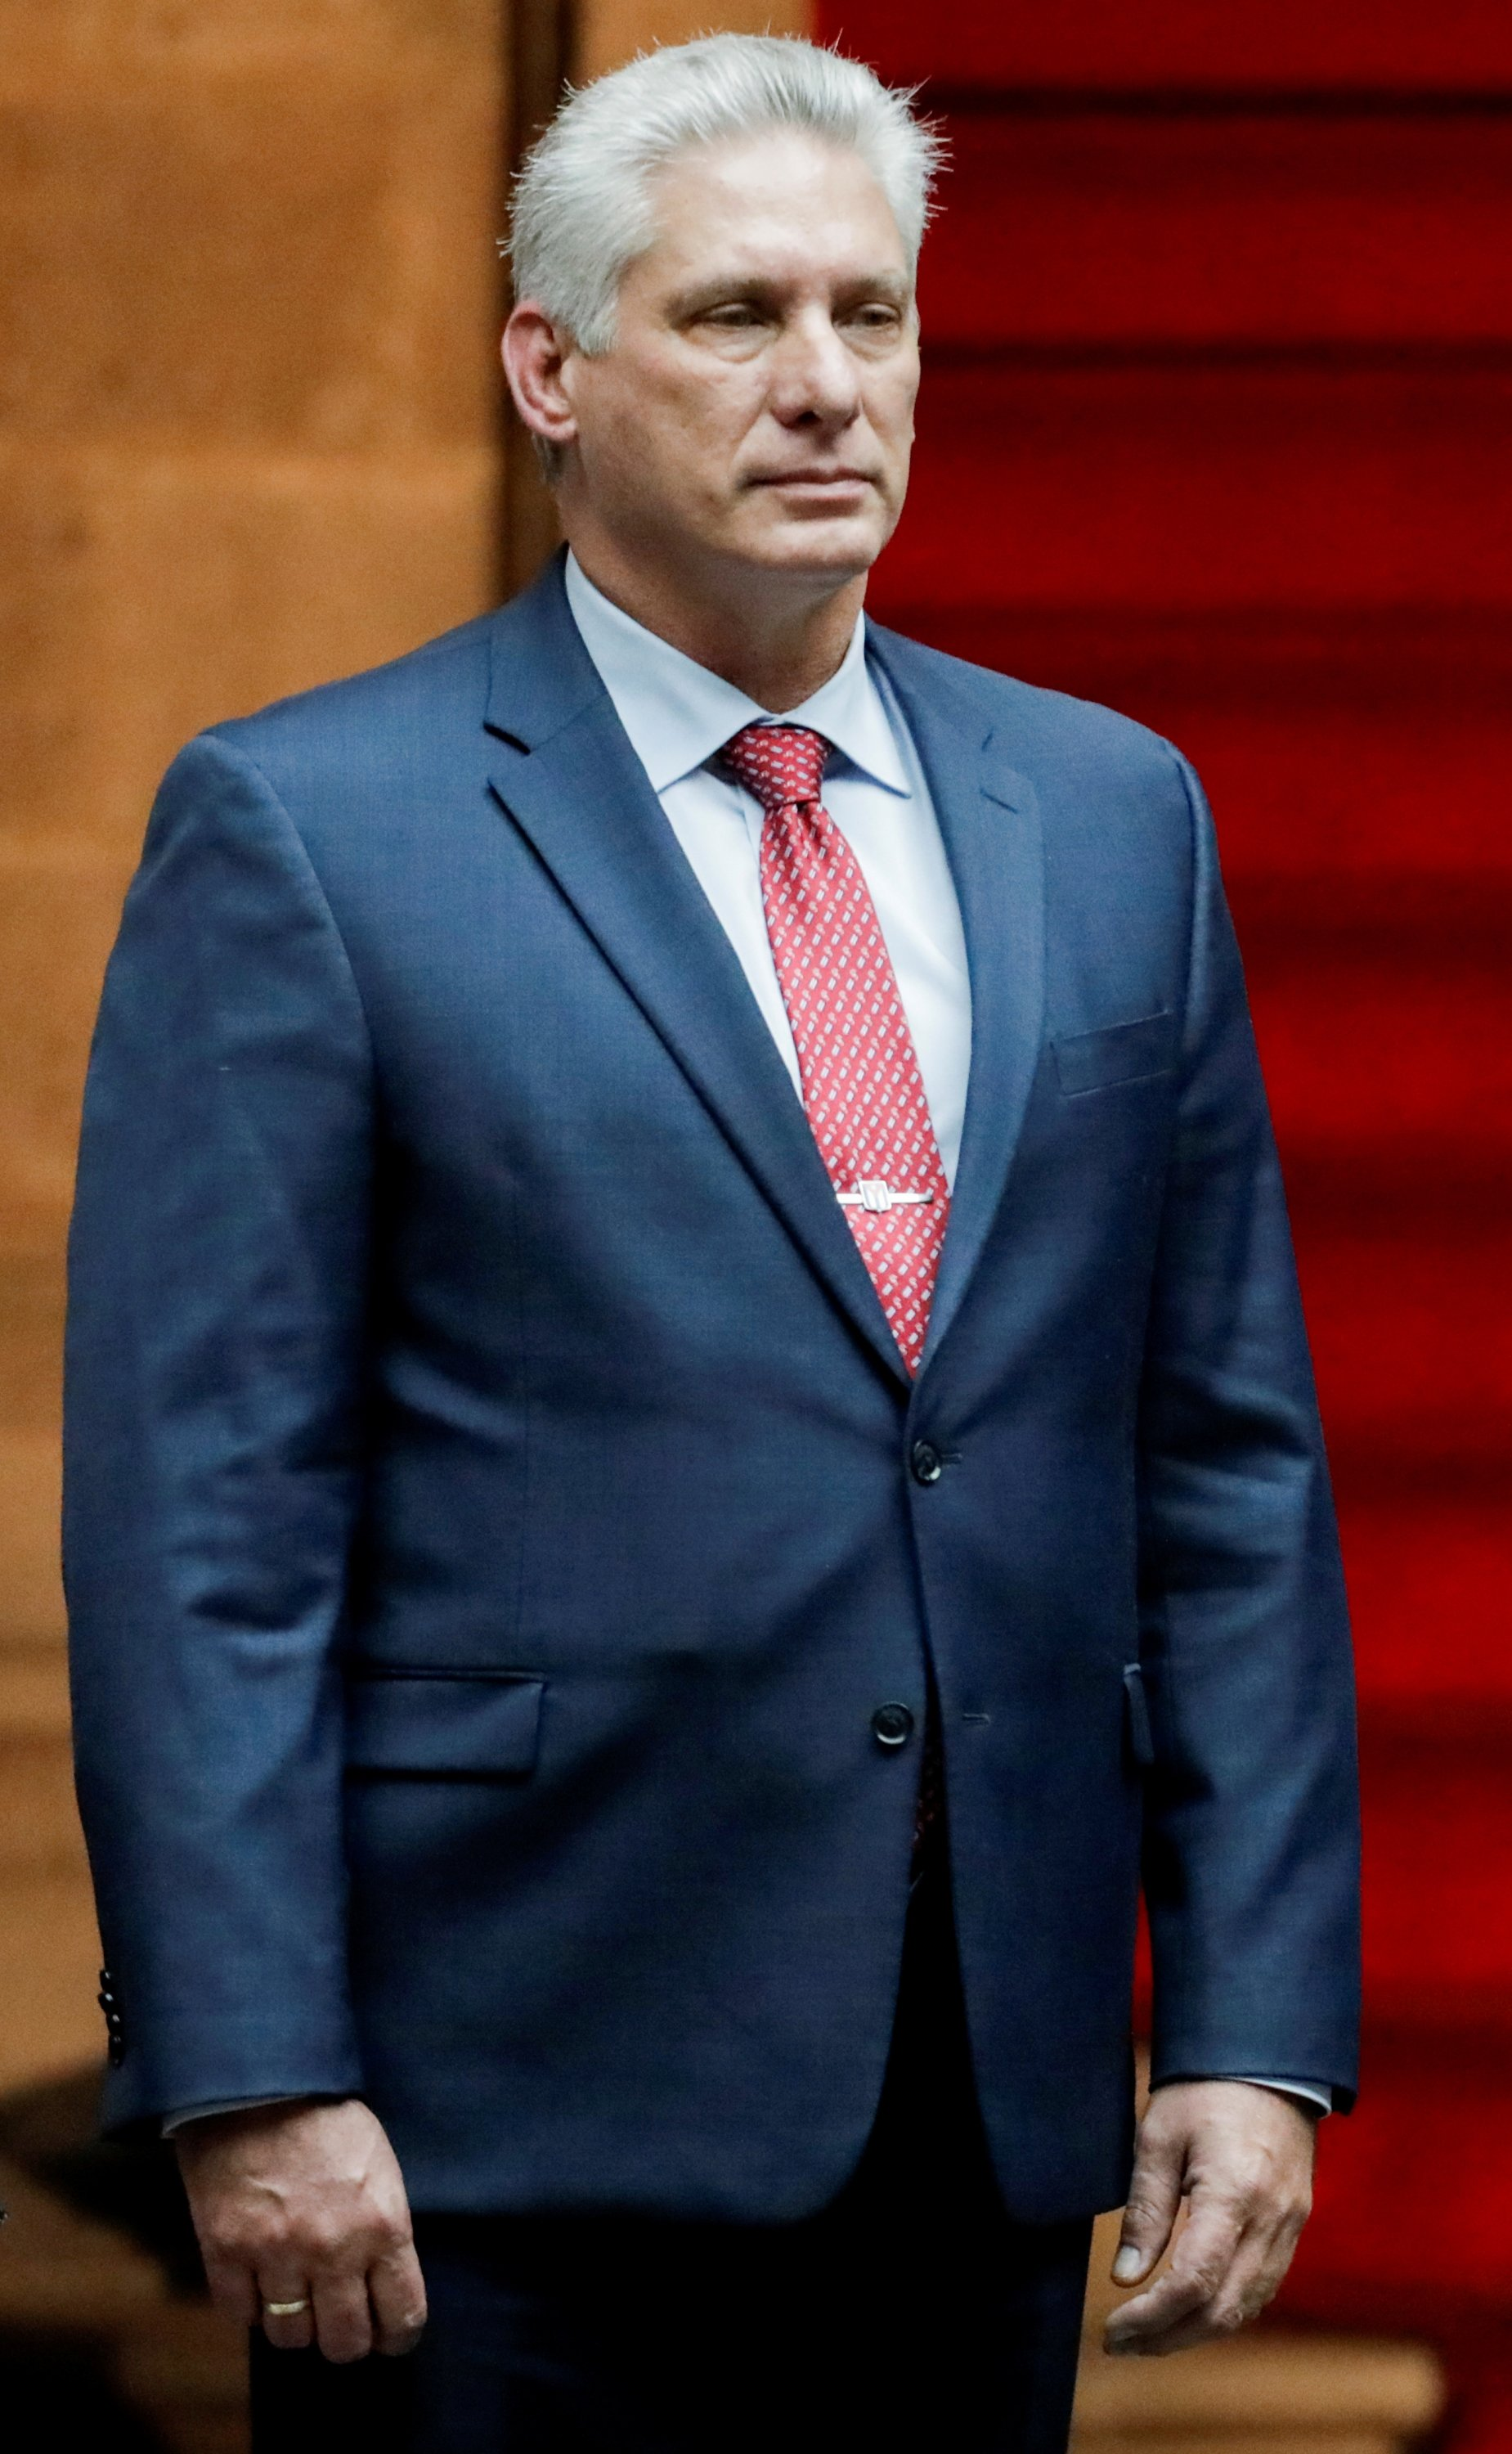 Cuba's President Miguel Diaz-Canel attends an official welcoming ceremony held by Mexico's President Andres Manuel Lopez Obrador, at National Palace in Mexico City, Mexico, Oct. 17, 2019. (Reuters Photo)